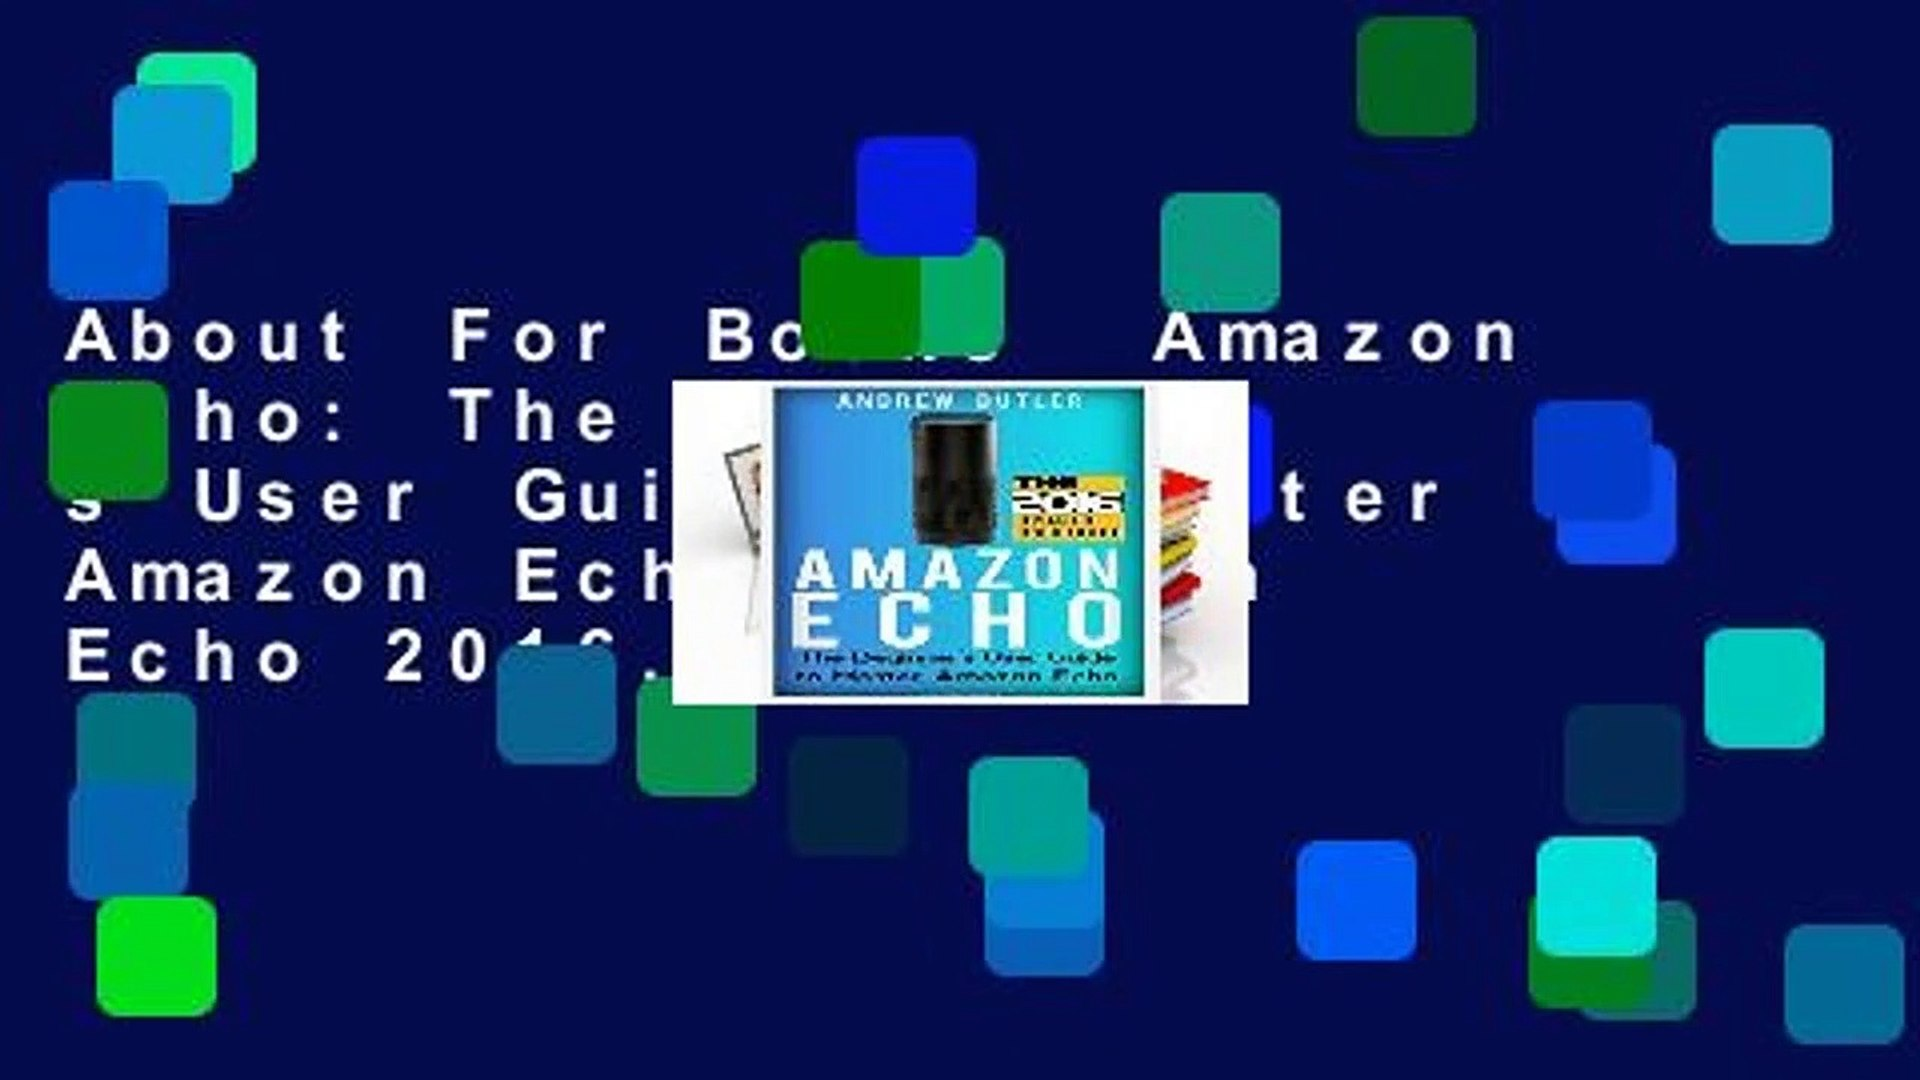 About For Books  Amazon Echo: The Beginner s User Guide to Master Amazon Echo (Amazon Echo 2016,